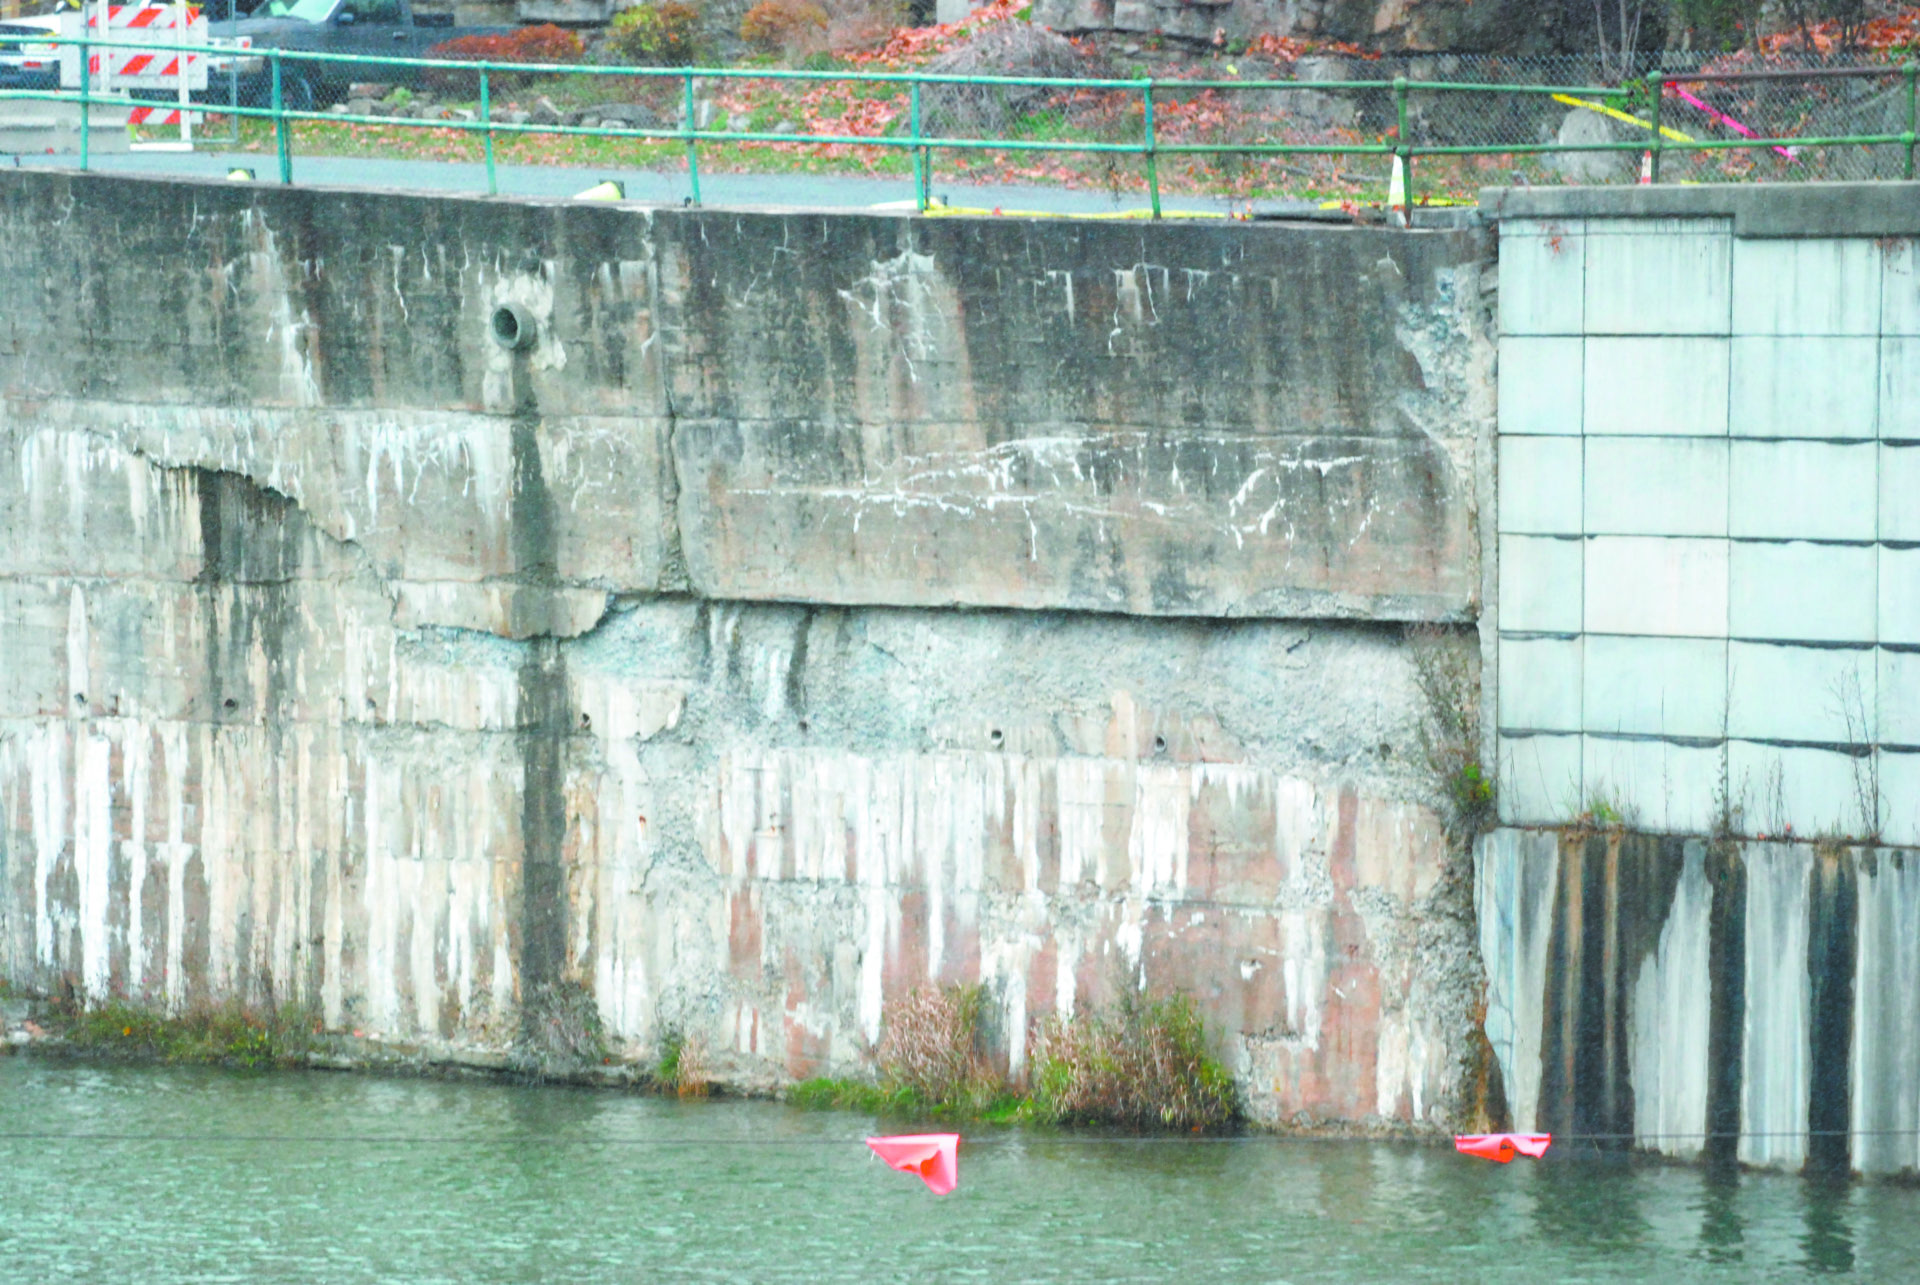 Faulty canal wall poses danger